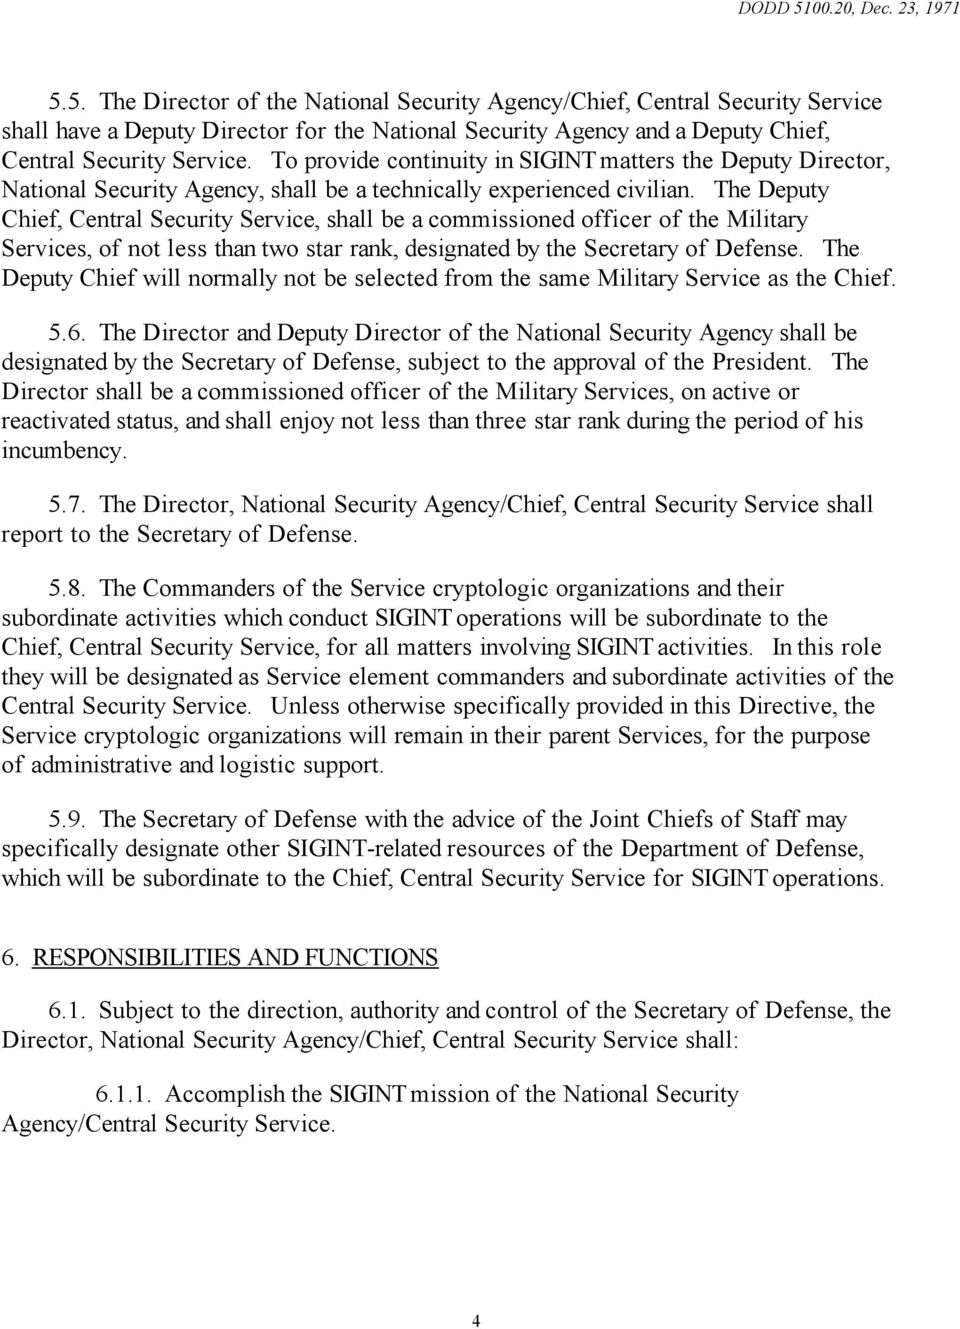 The Deputy Chief, Central Security Service, shall be a commissioned officer of the Military Services, of not less than two star rank, designated by the Secretary of Defense.